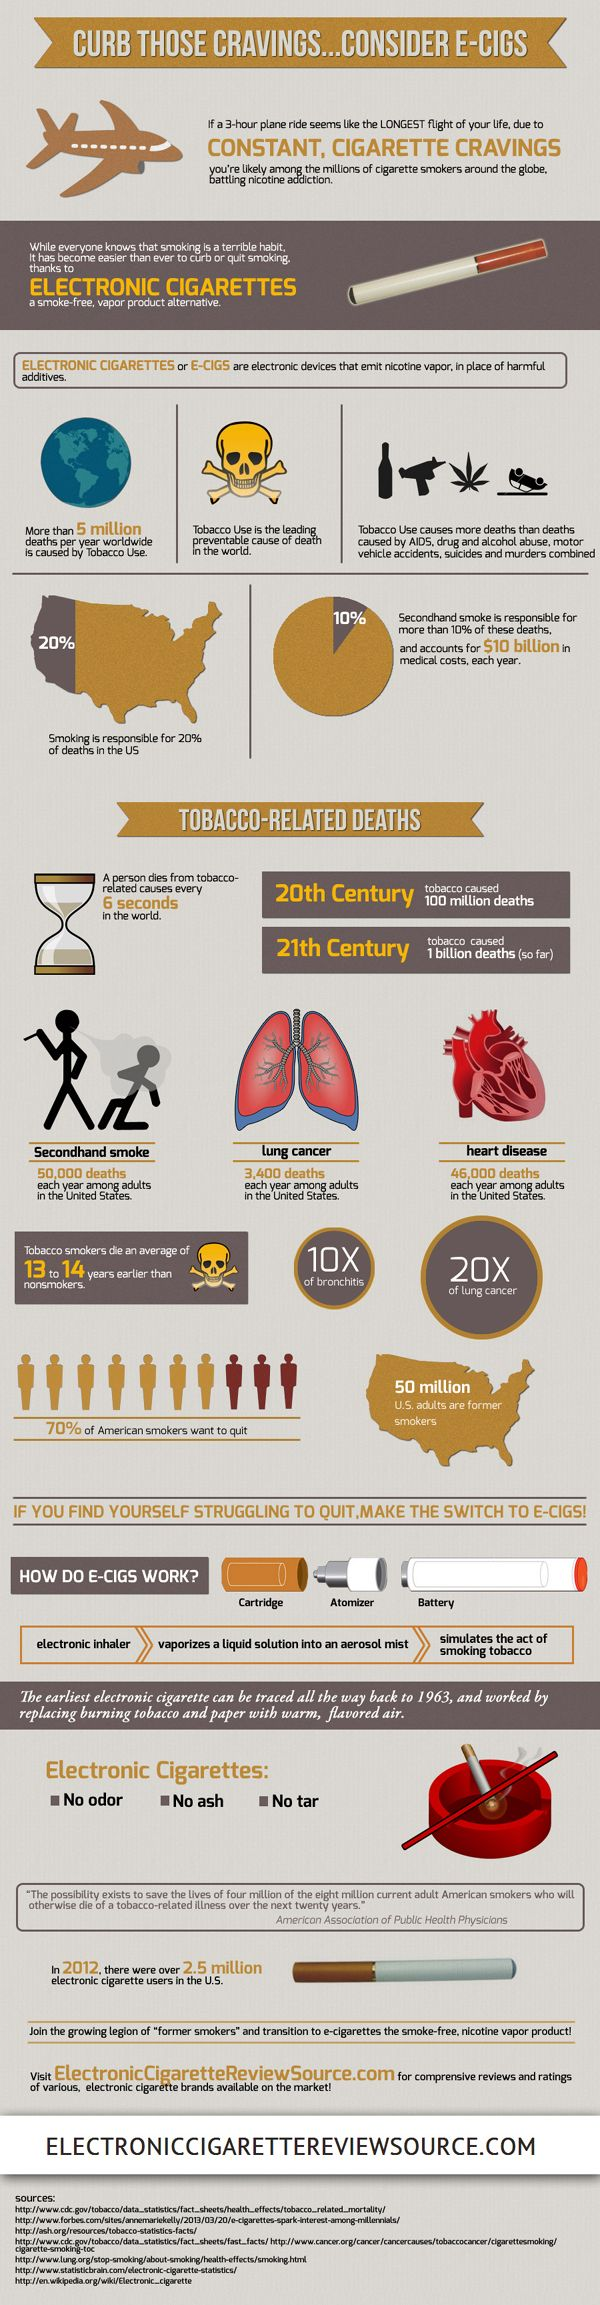 http://www.electroniccigarettereviewsource.com/best-e-cigarette-brands/  Looking for the Best Electronic Cigarette Brands? - Curb Those Cravings...Consider E-Cigs (Infographic)